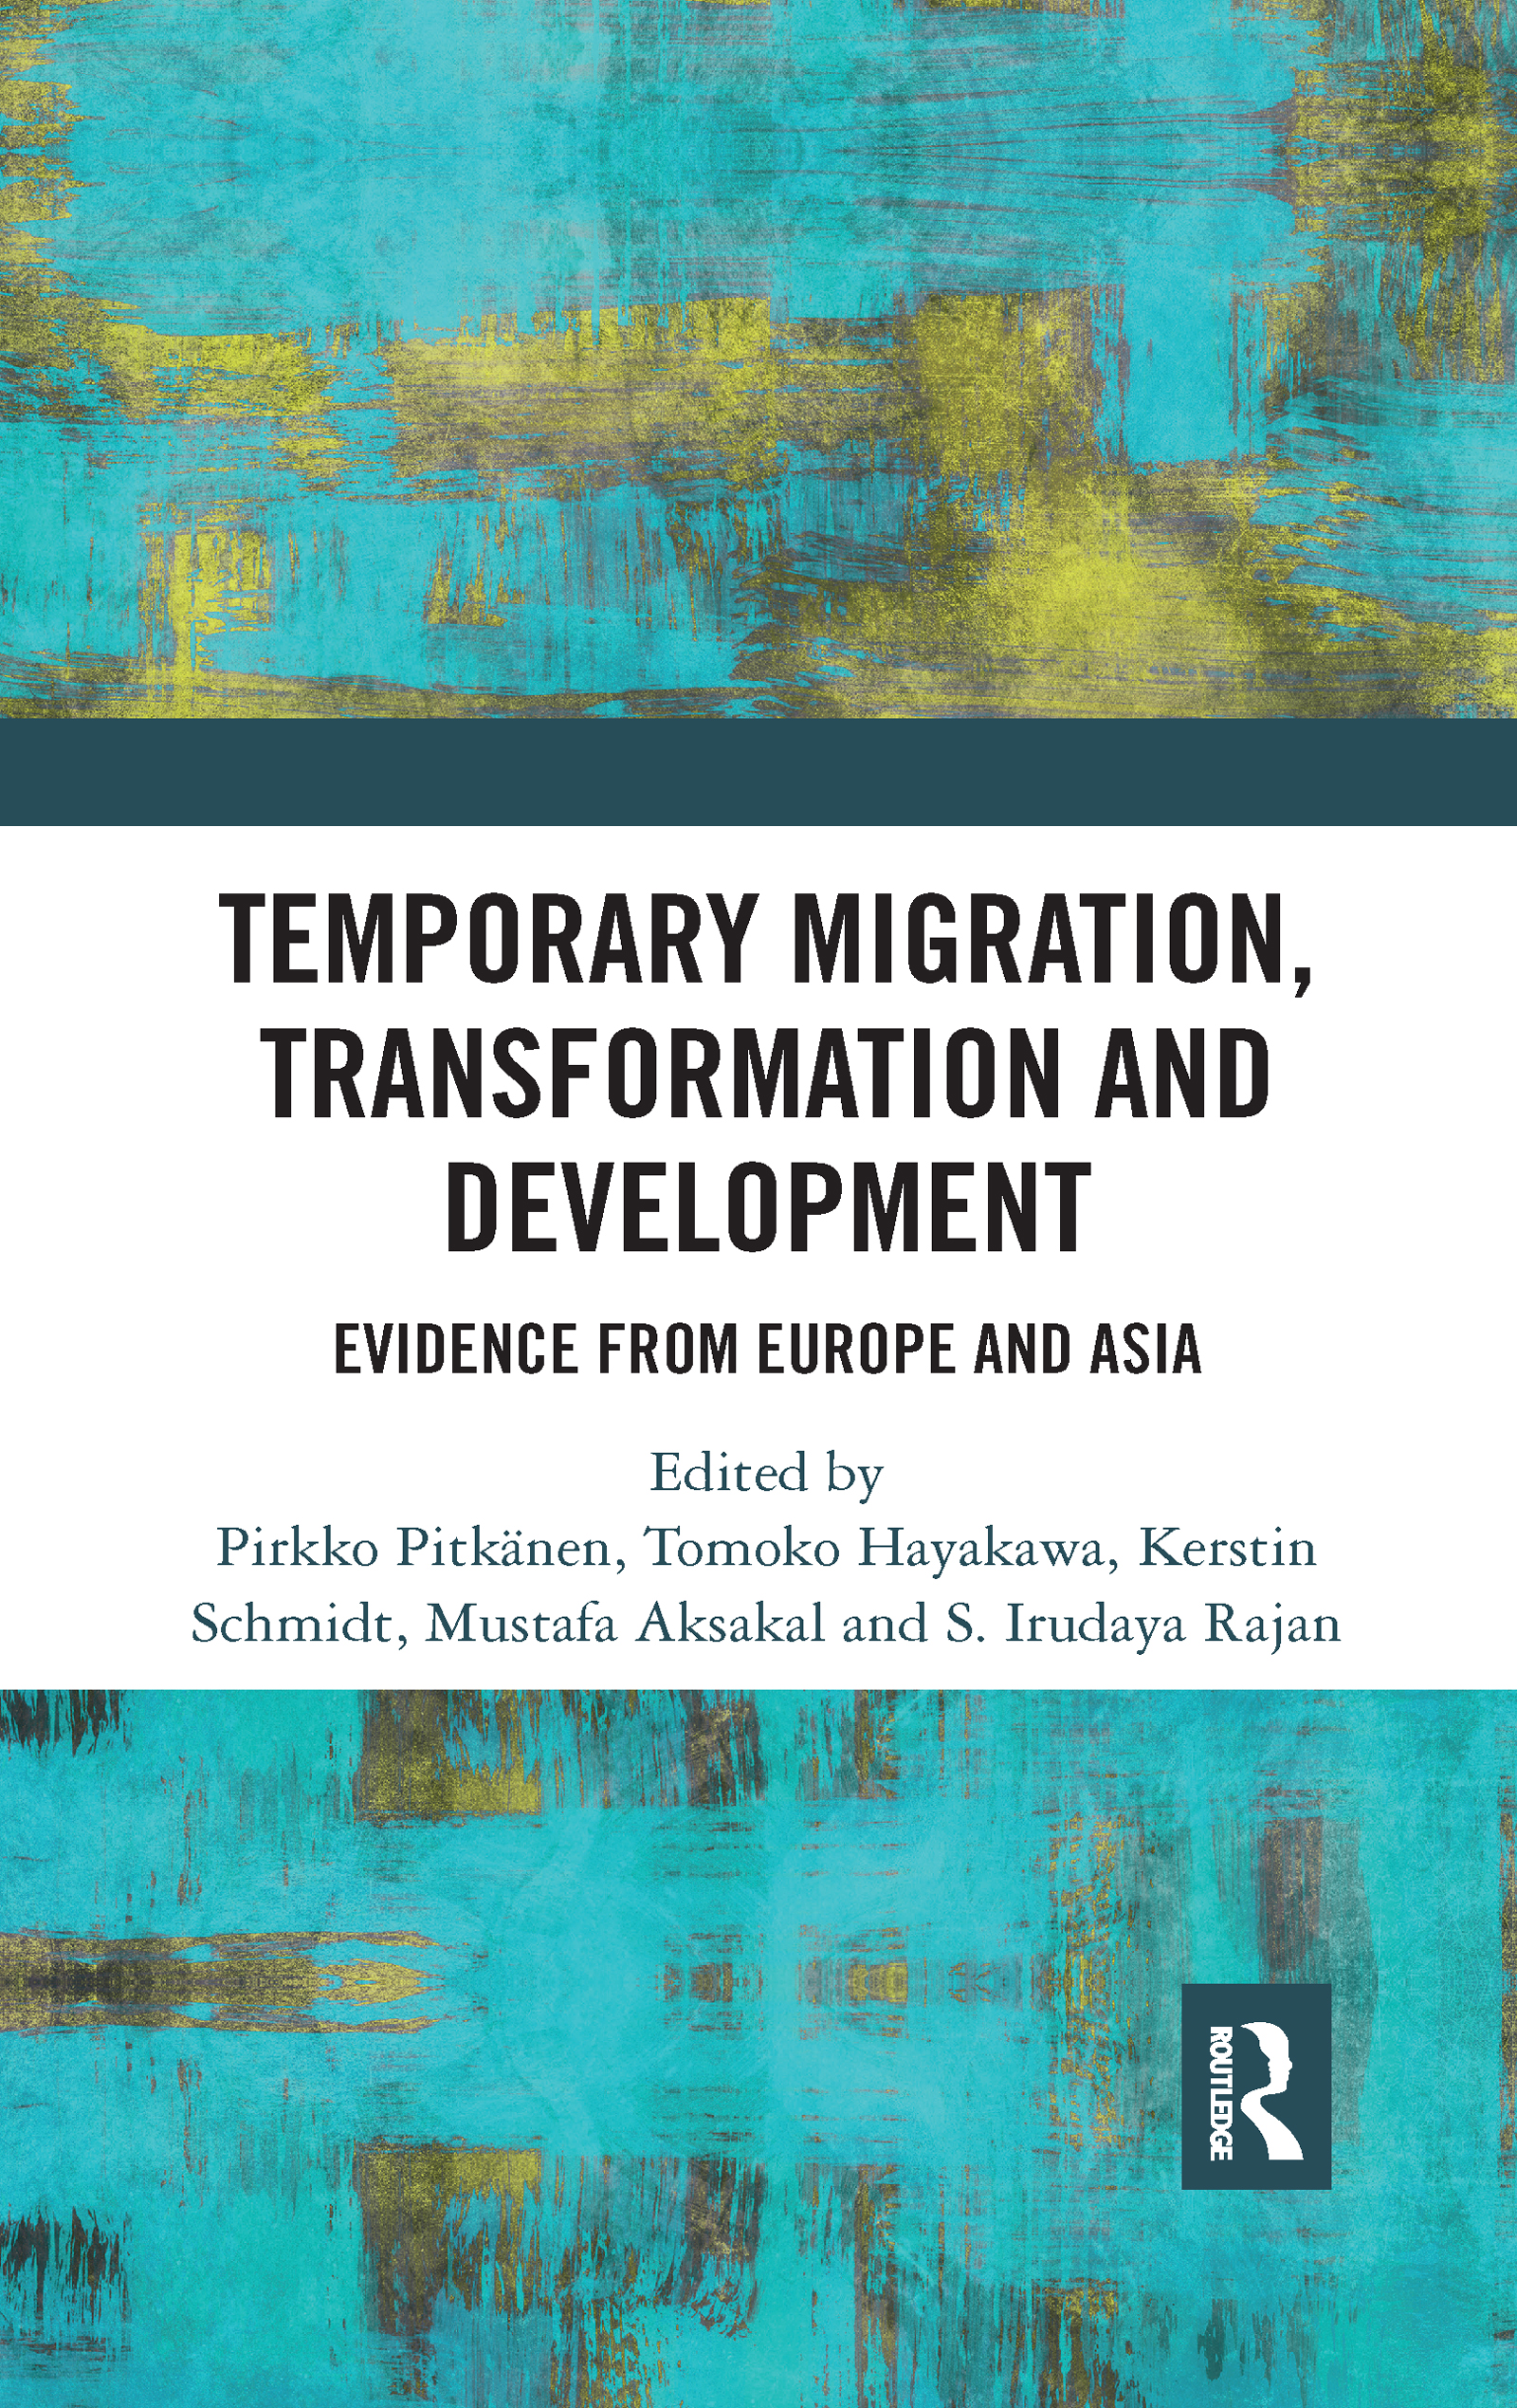 Temporary Migration, Transformation and Development